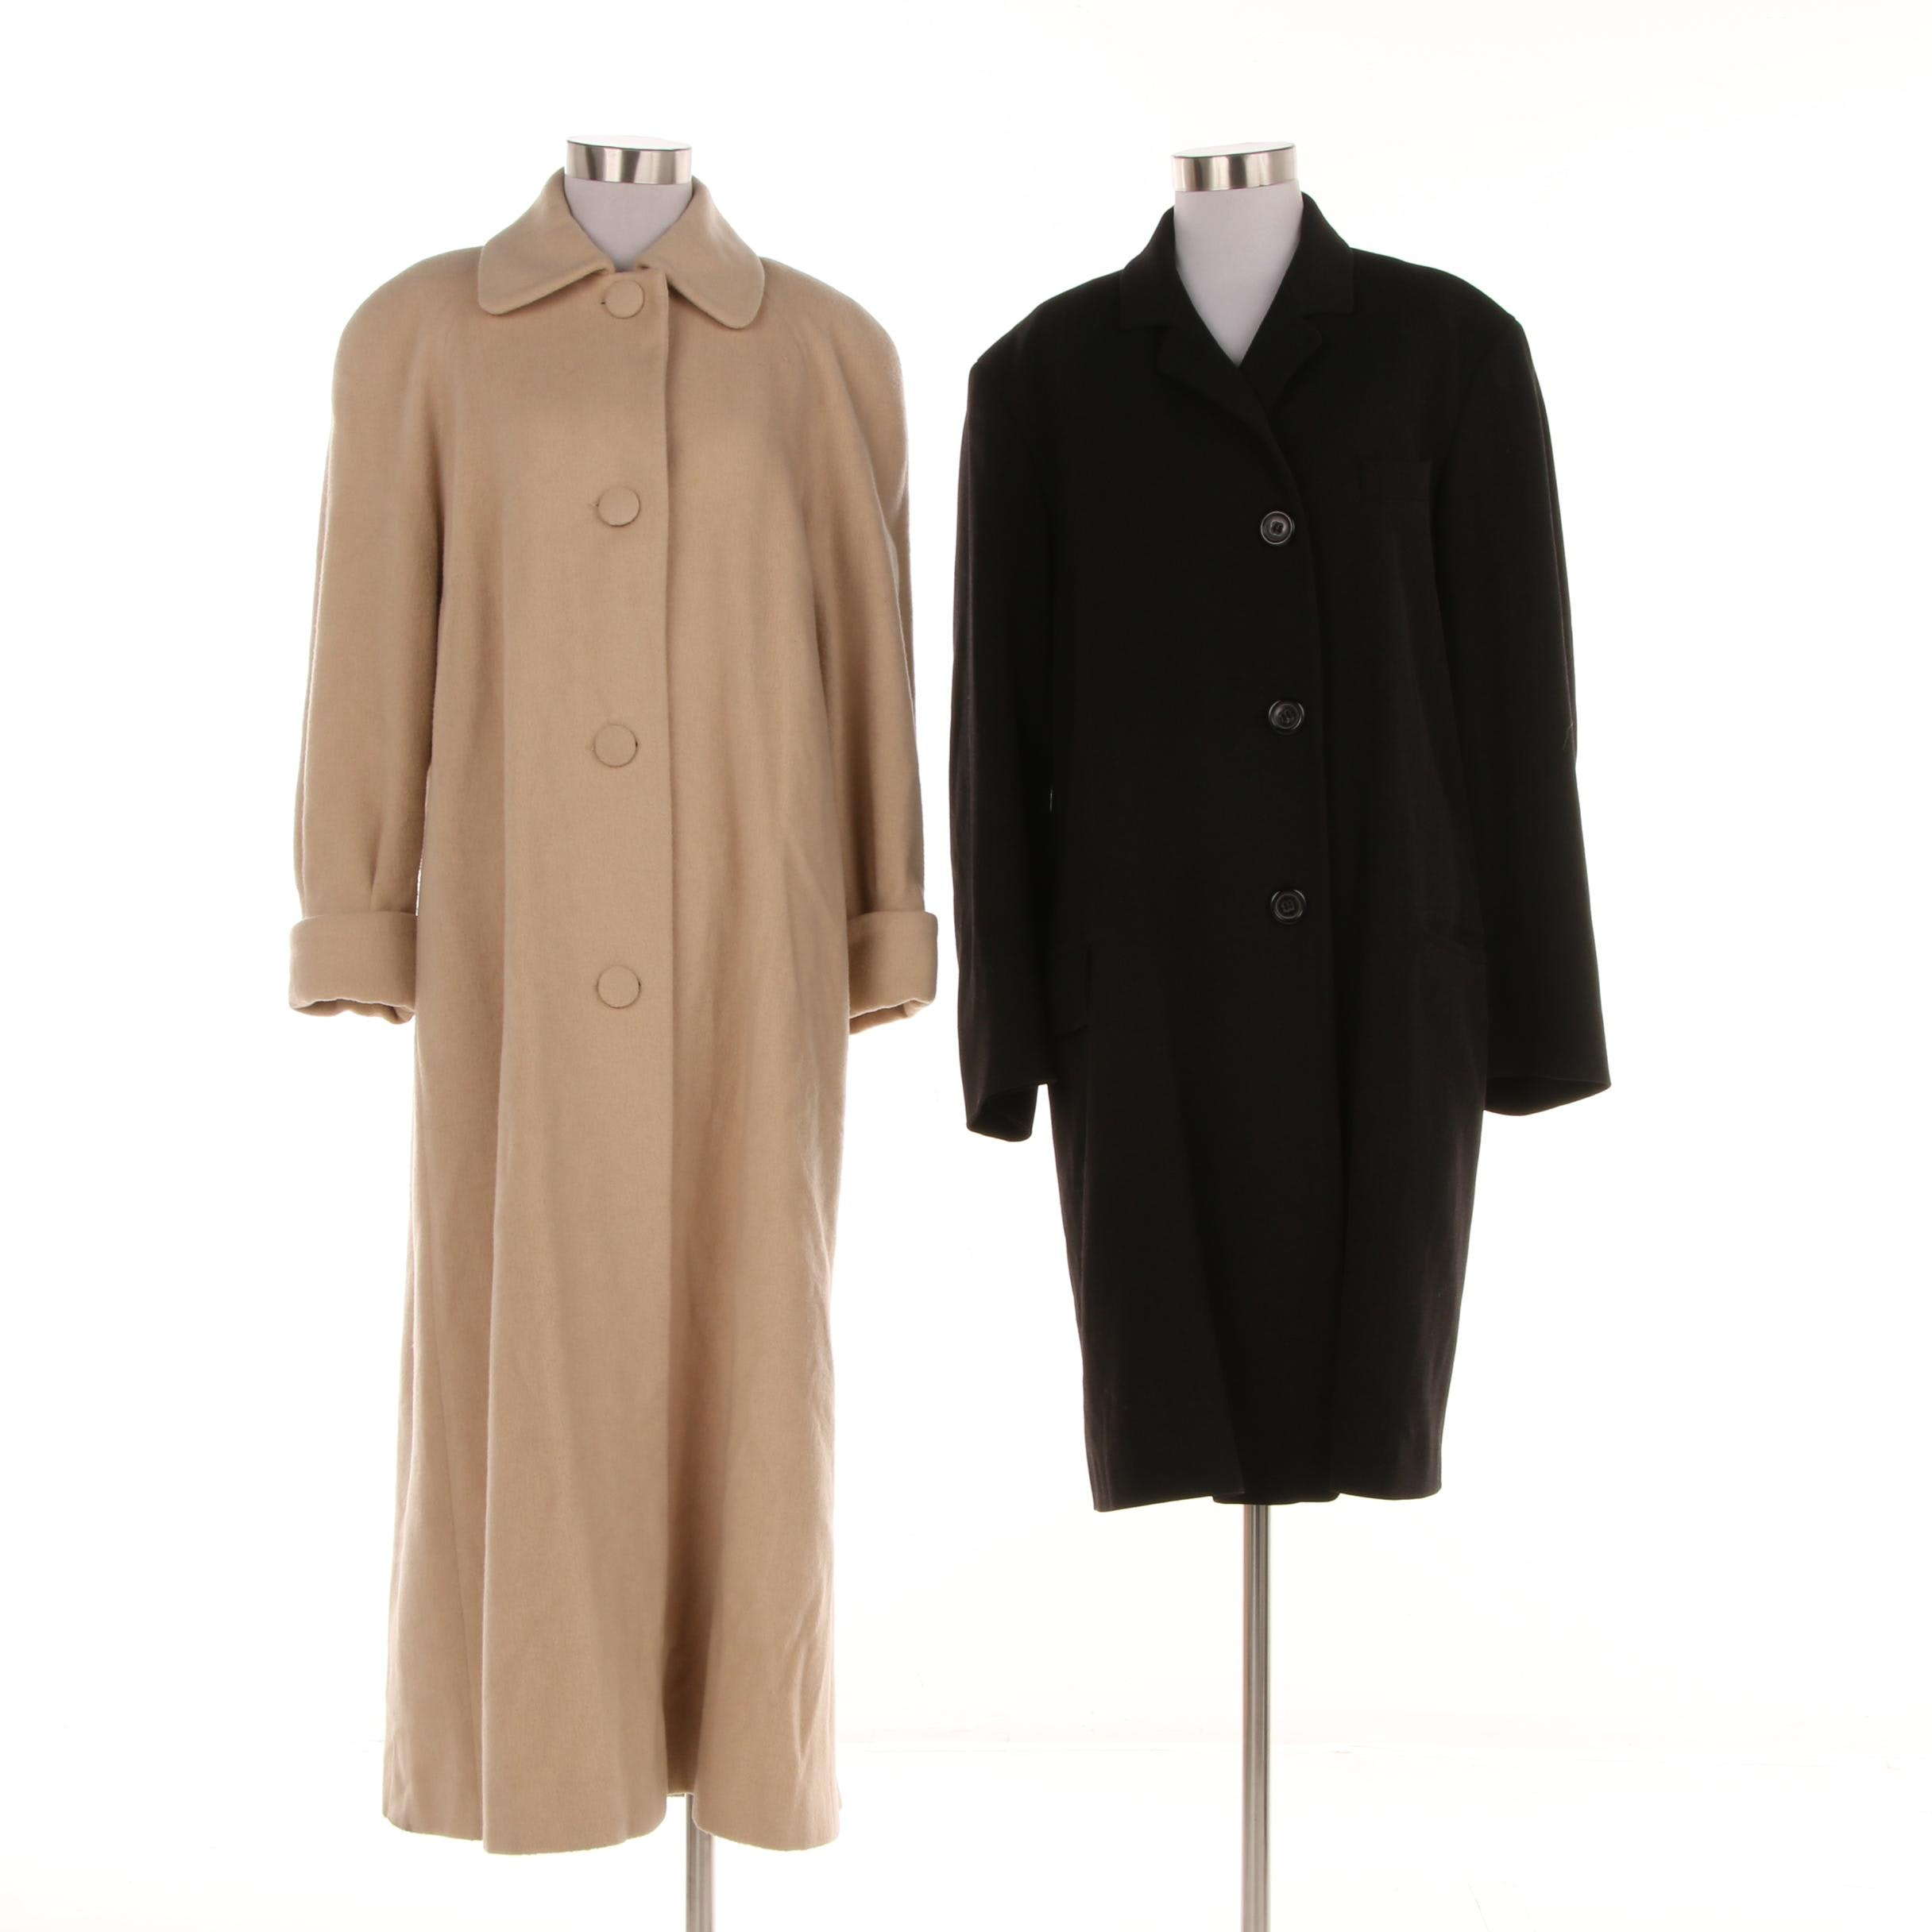 Women's H Halston and Jil Sander Wool Blend Coats